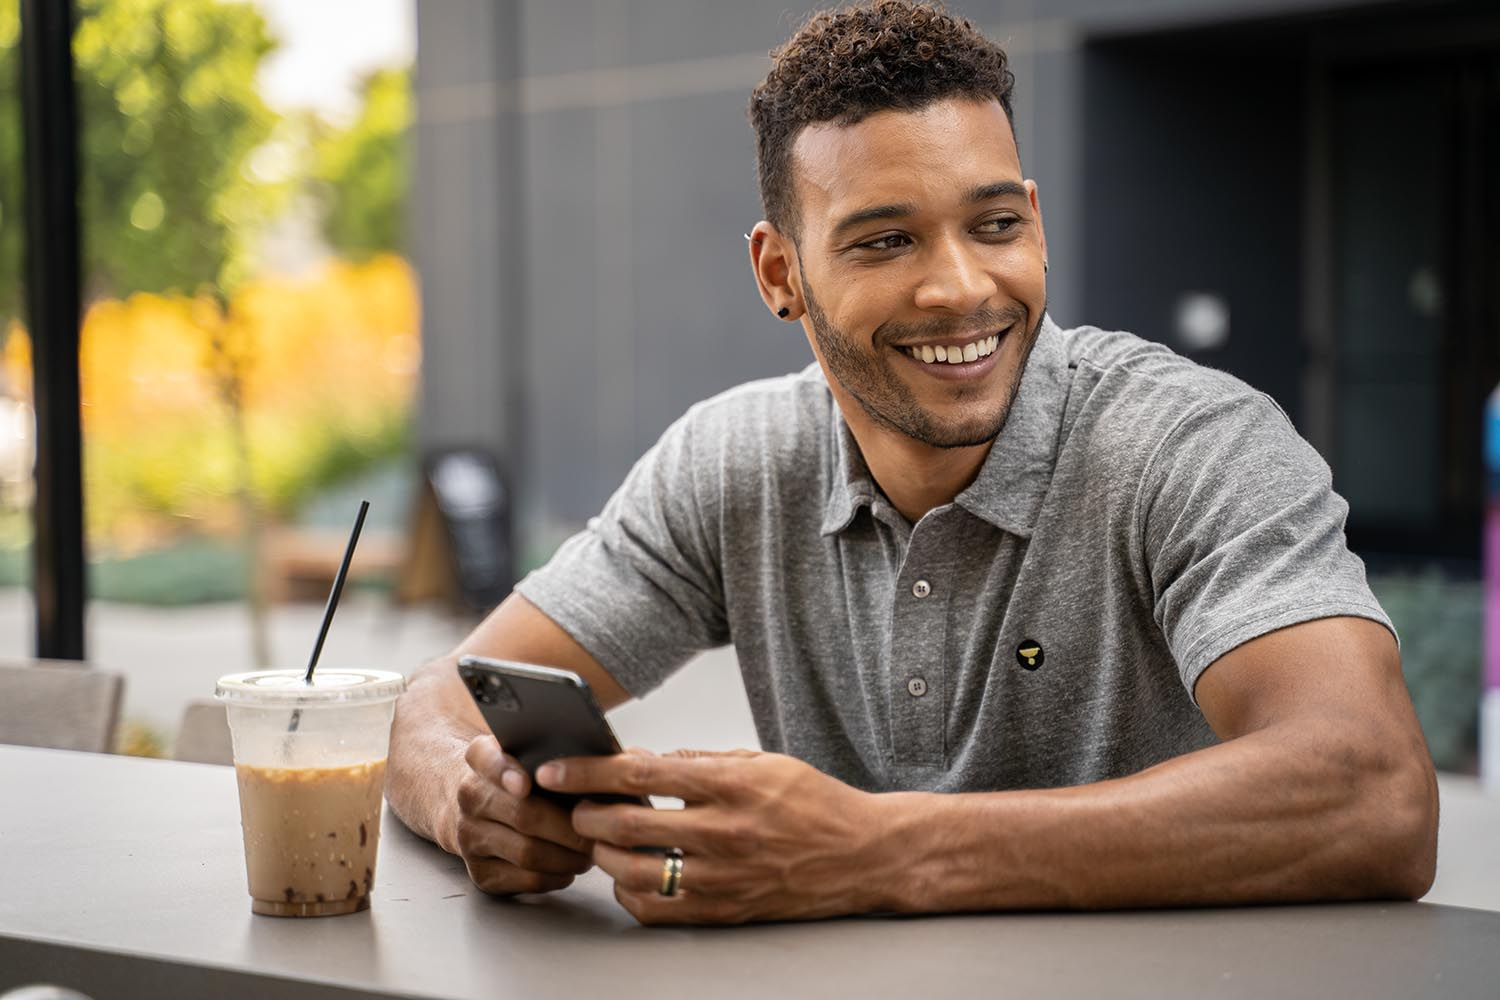 Lifestyle-On-Location-Model-Onmodel-Damion-Lloyd-Photography-Commercial-Product-Apparel-Clothing-Los-Angeles-Orange-County-female-male-The-Yellow-Life-coffee-phone-polo-shirt